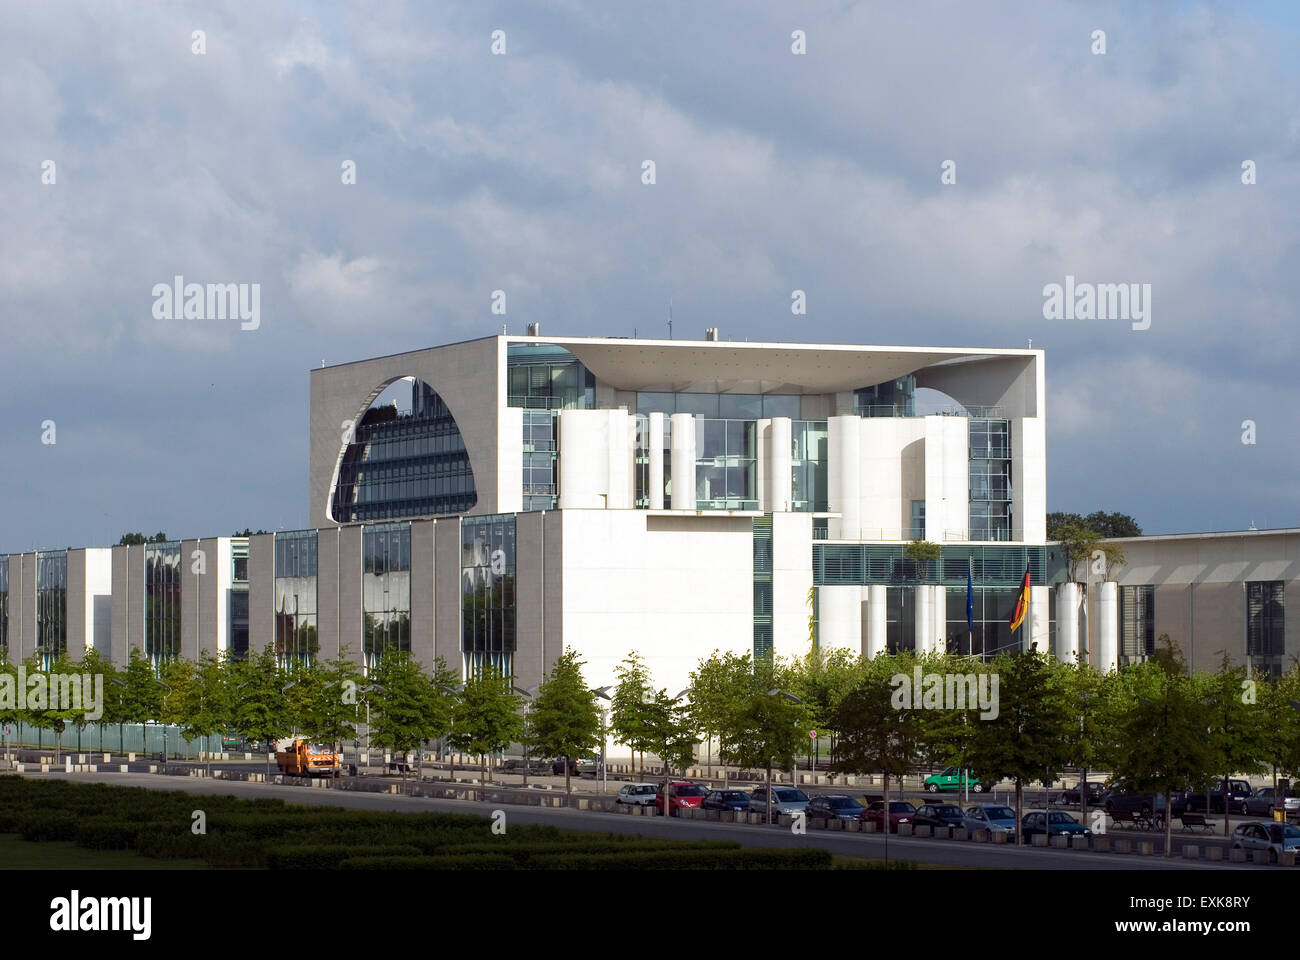 Federal Chancellor Building  Berlin Germany Europe - Stock Image